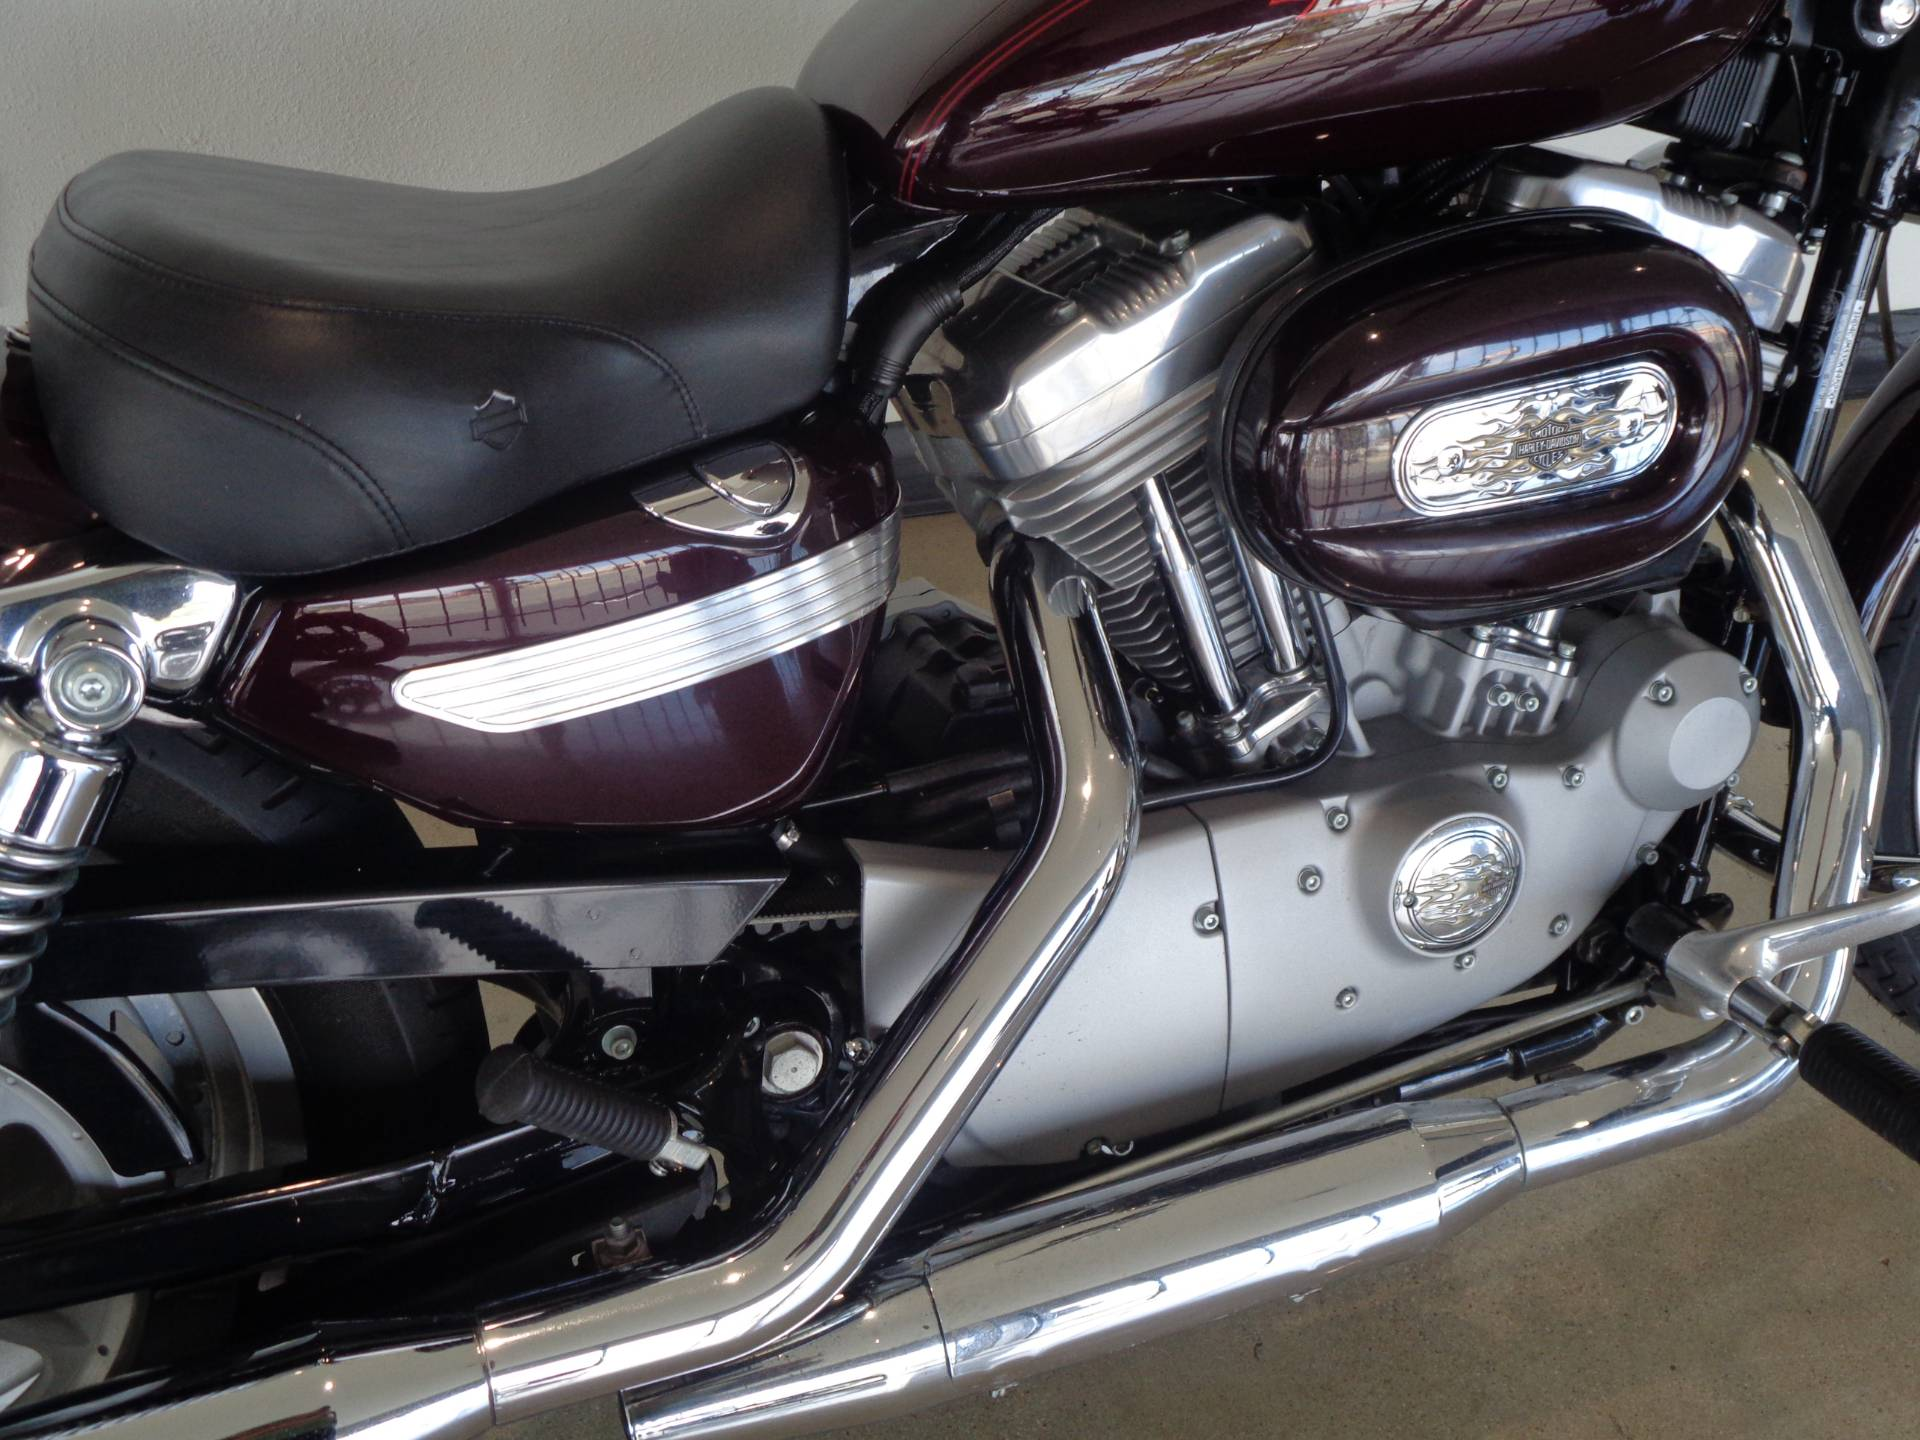 2005 Harley-Davidson Sportster® XL 883C in Chula Vista, California - Photo 6